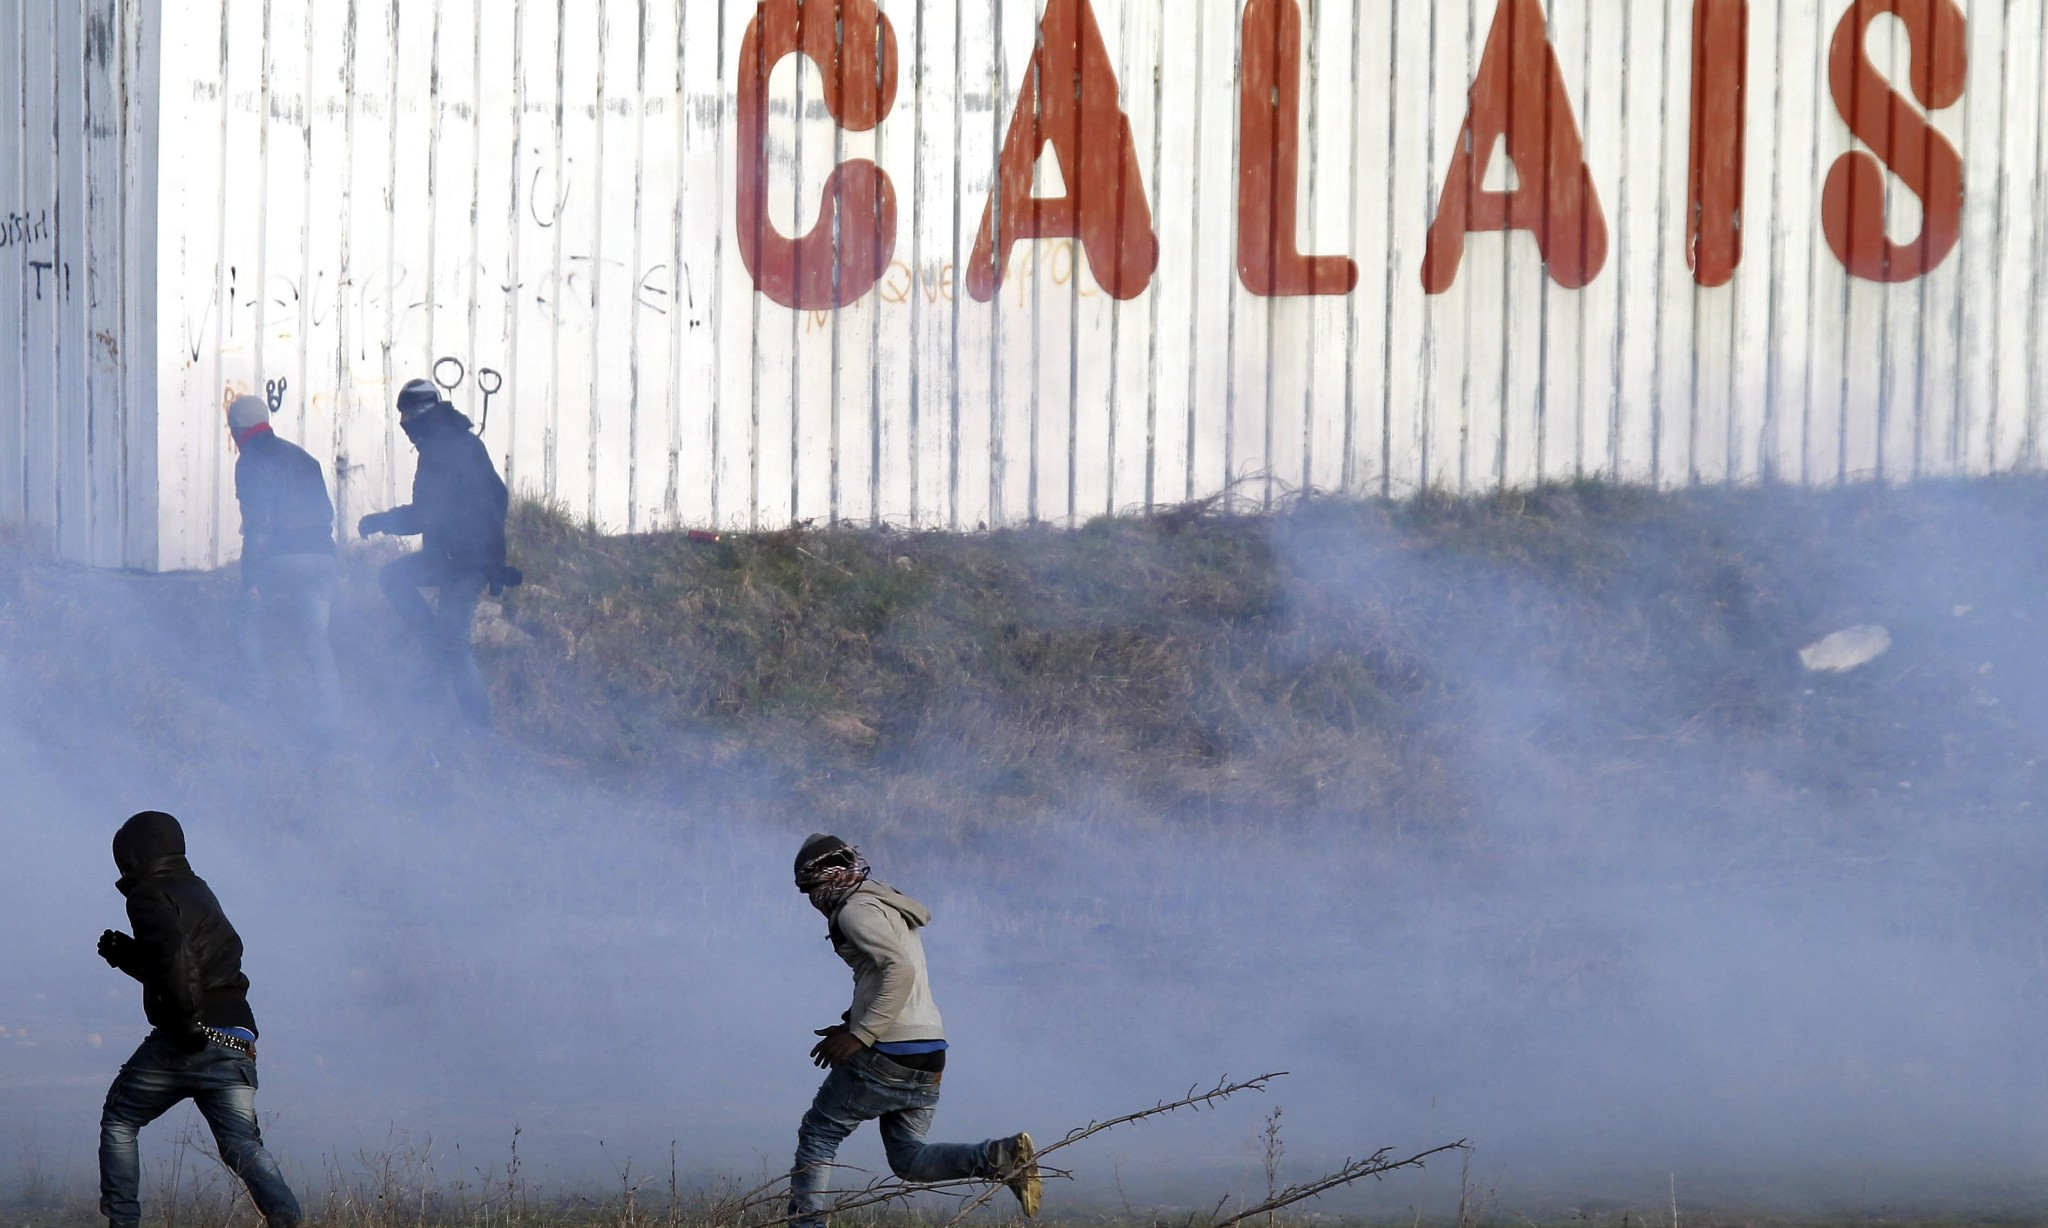 France vows to maintain order in Calais after migrants board ferry